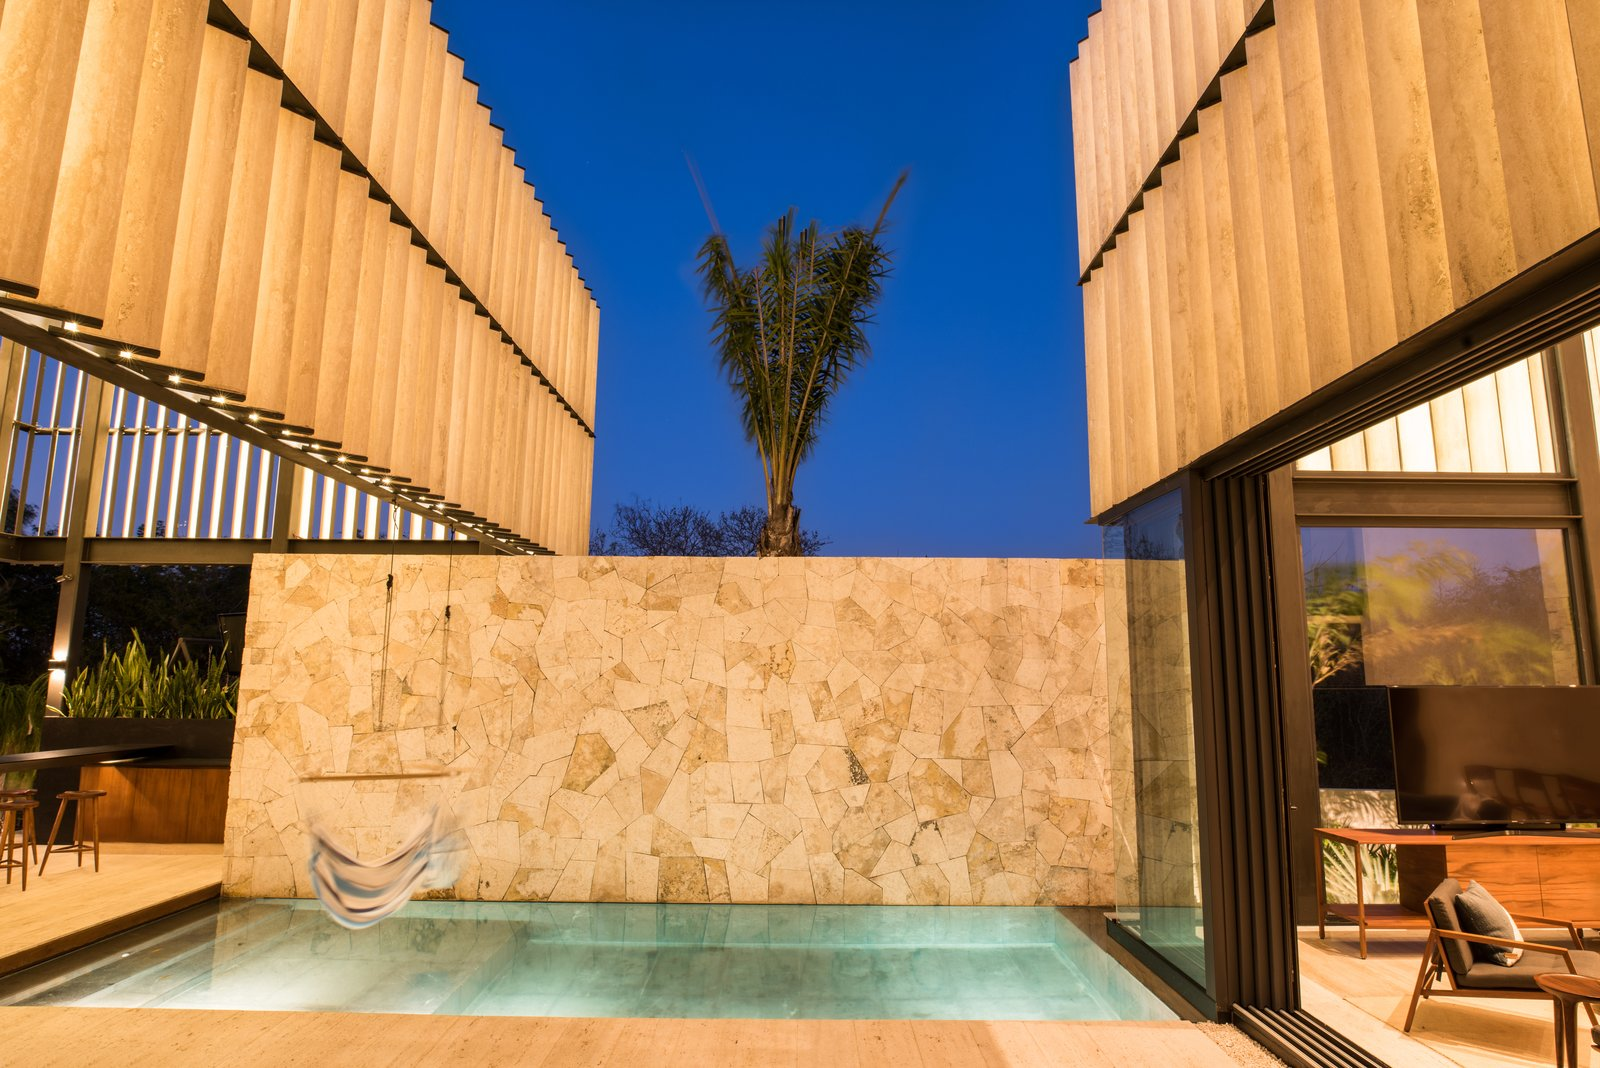 Outdoor, Standard Construction Pools, Tubs, Shower, and Back Yard Pool (cenote)  Casa Chaaltun by tescala